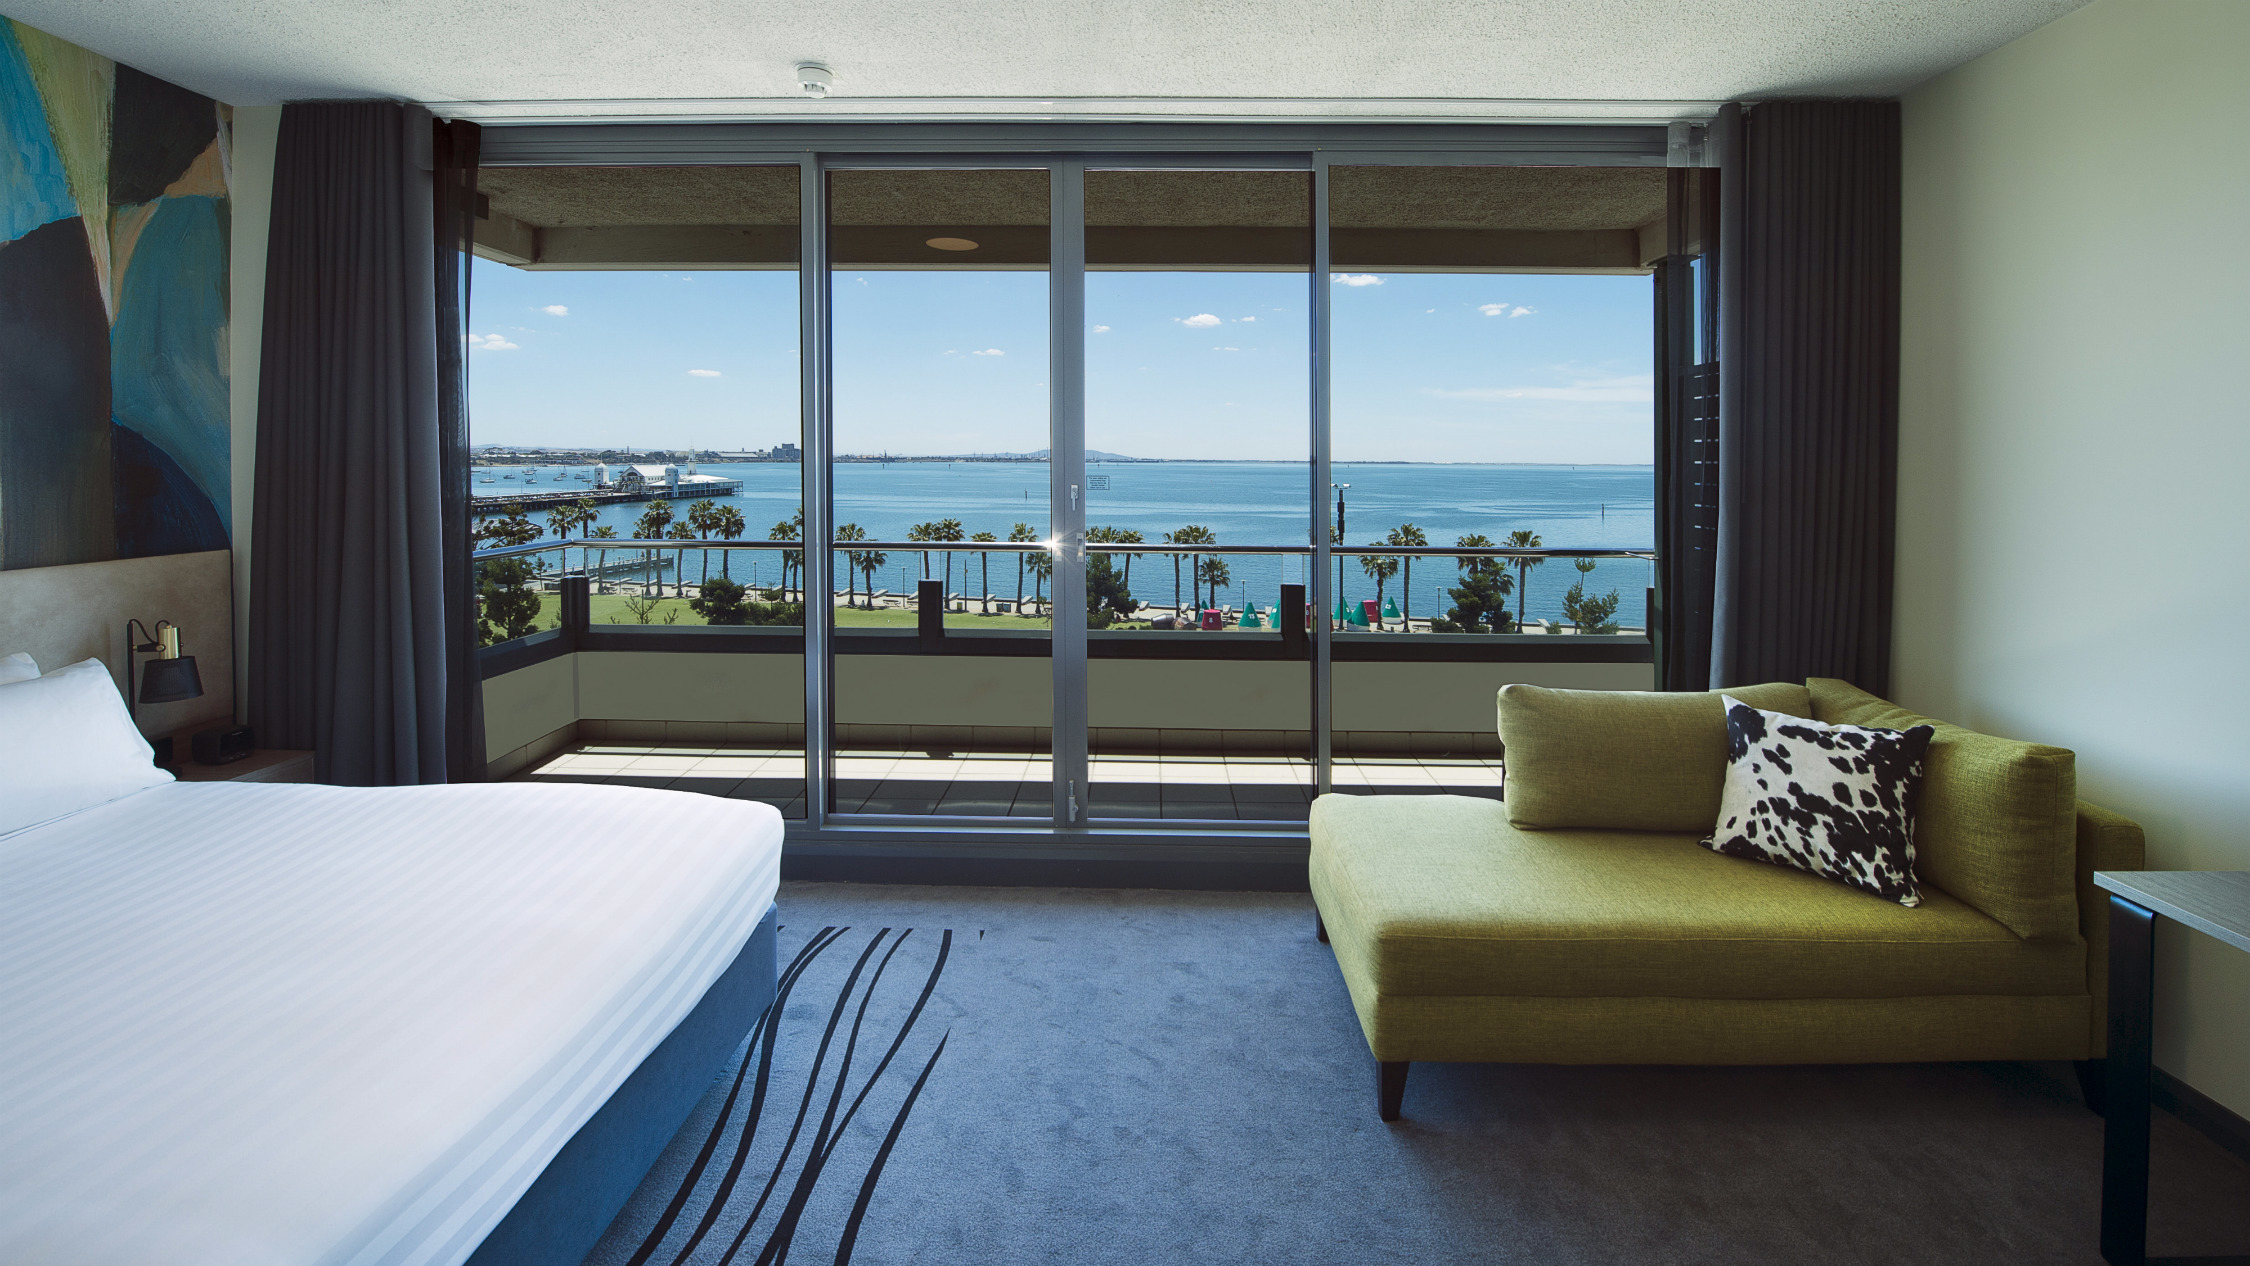 Interior of hotel room, with an ocean view